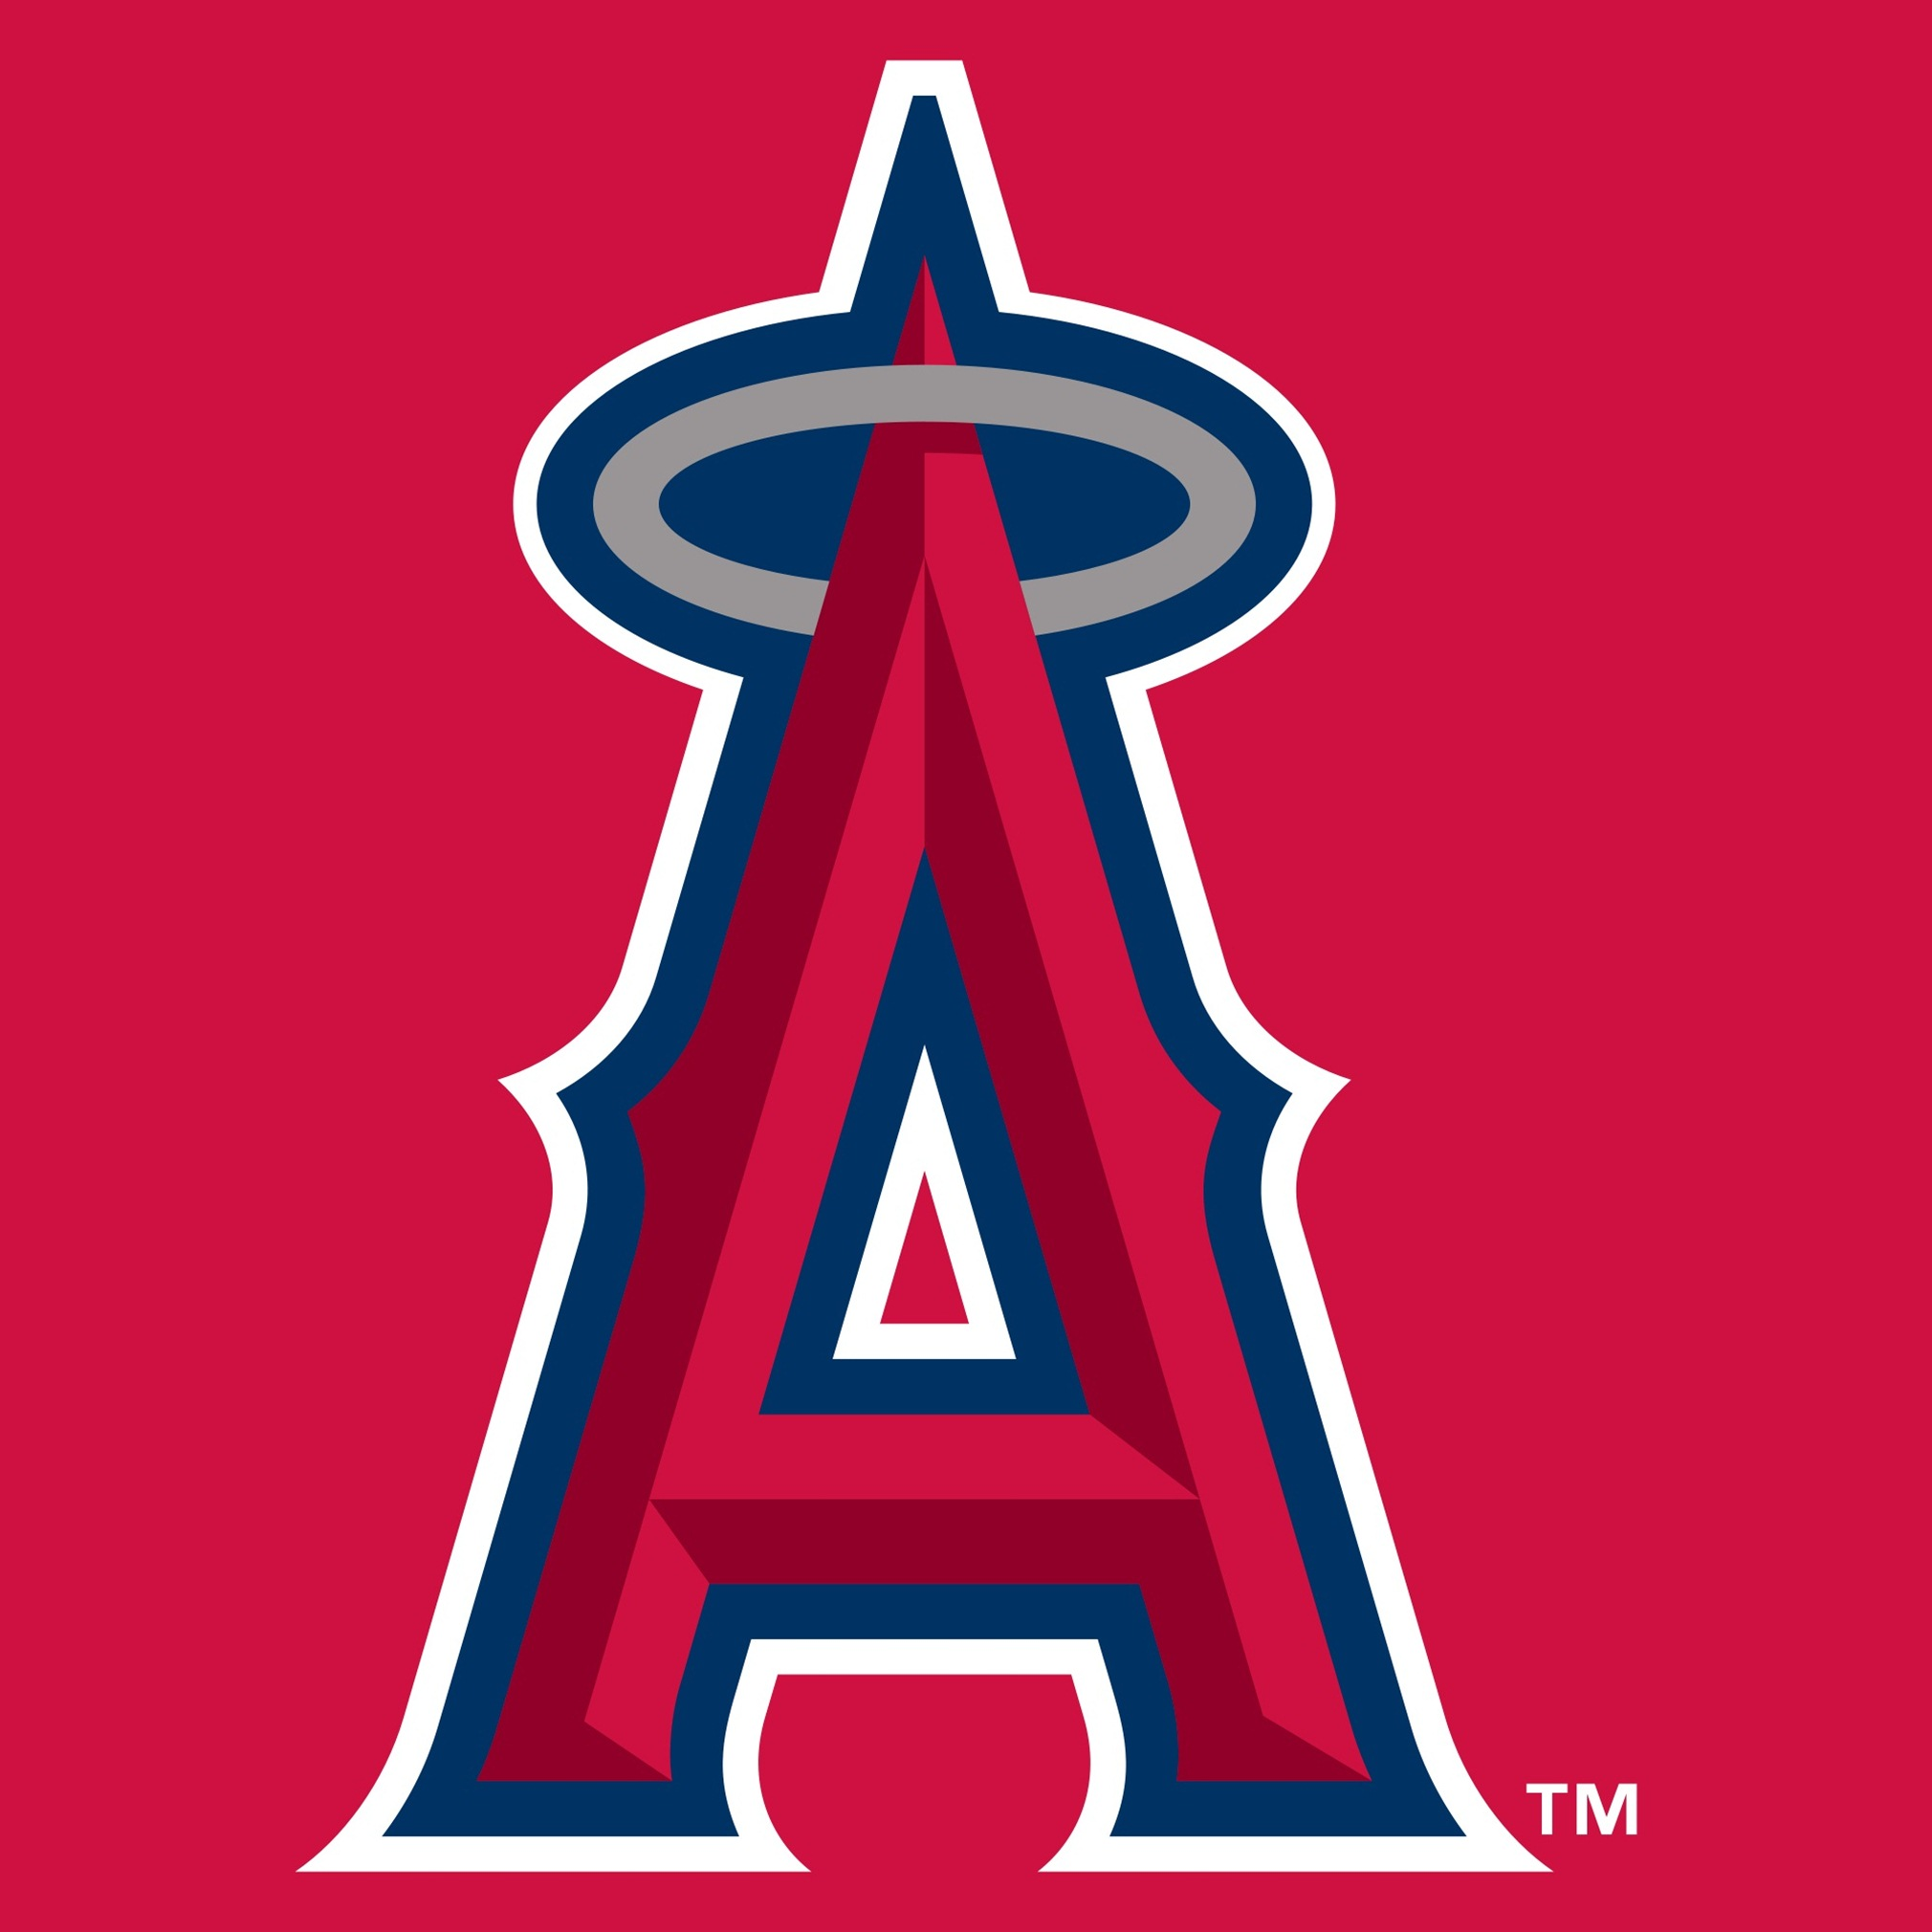 Los Angeles Angels of Anaheim wallpapers Los Angeles Angels of 2020x2020